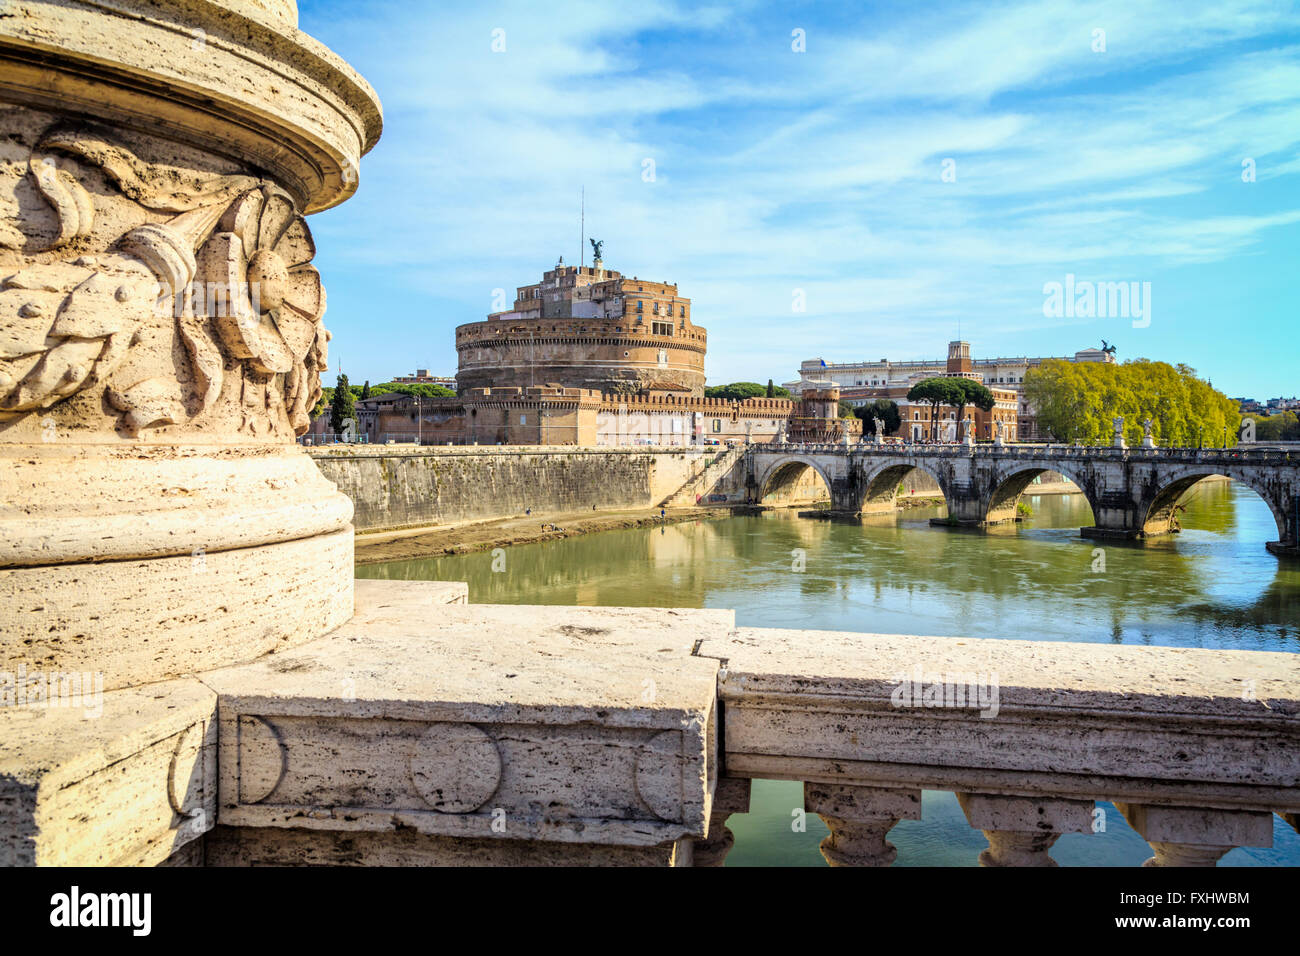 Rome, Italy. Castel Sant'Angelo and Ponte Sant'Angelo seen from Ponte Vittorio Emanuele II. - Stock Image